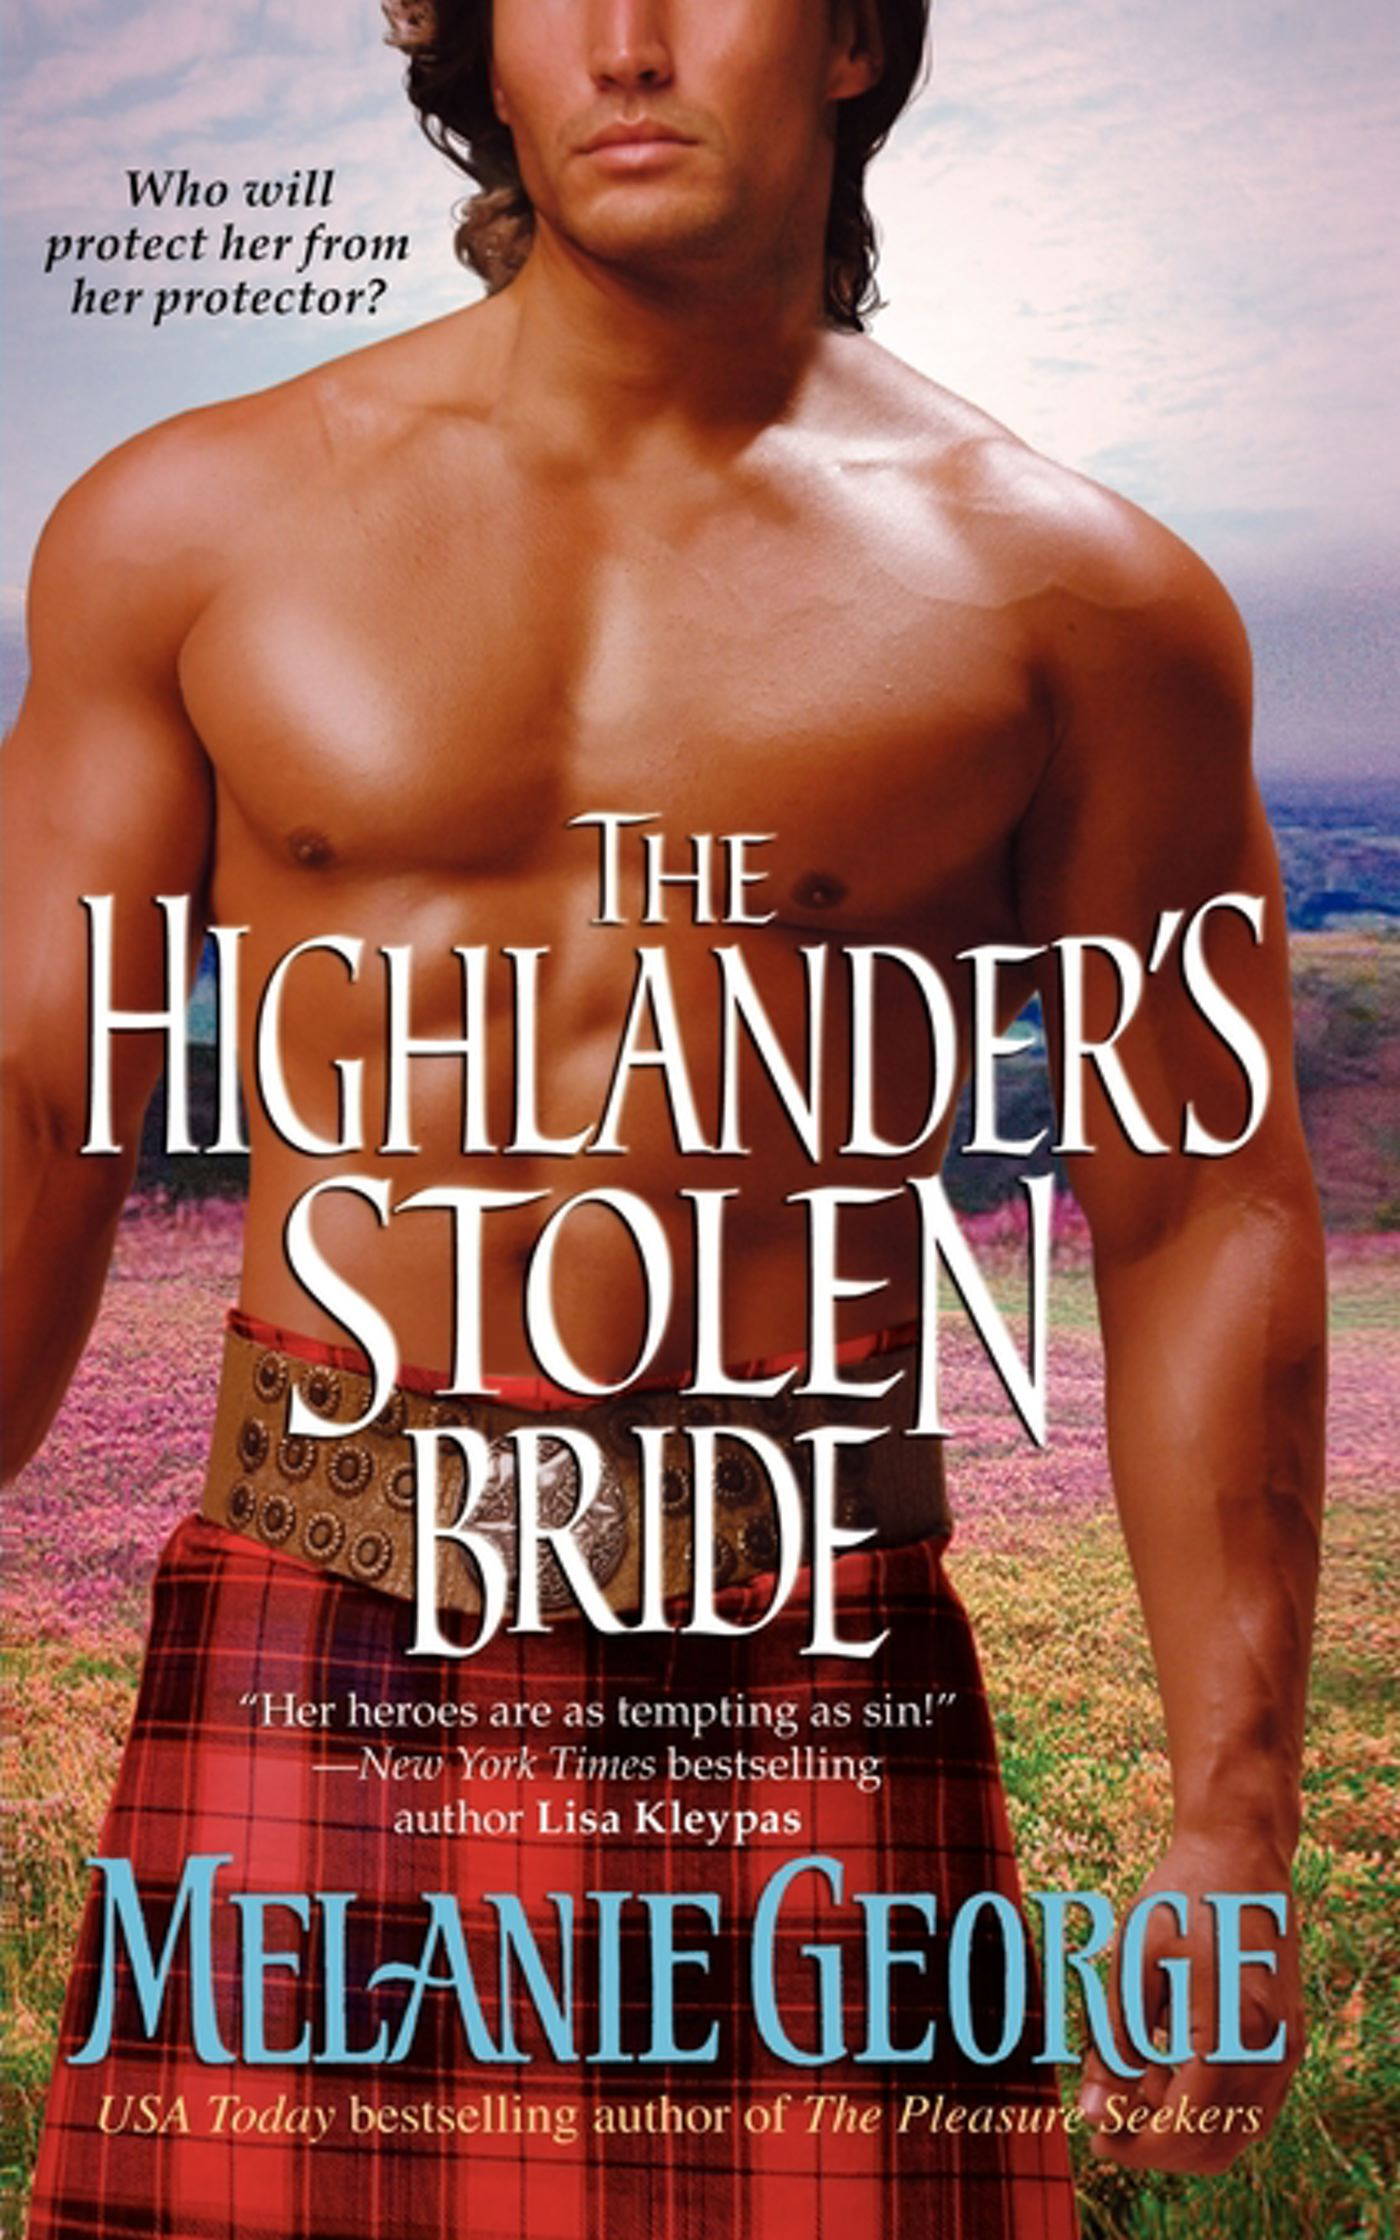 The highlanders stolen bride ebook by melanie george official book cover image jpg the highlanders stolen bride ebook 9781416530756 fandeluxe Choice Image